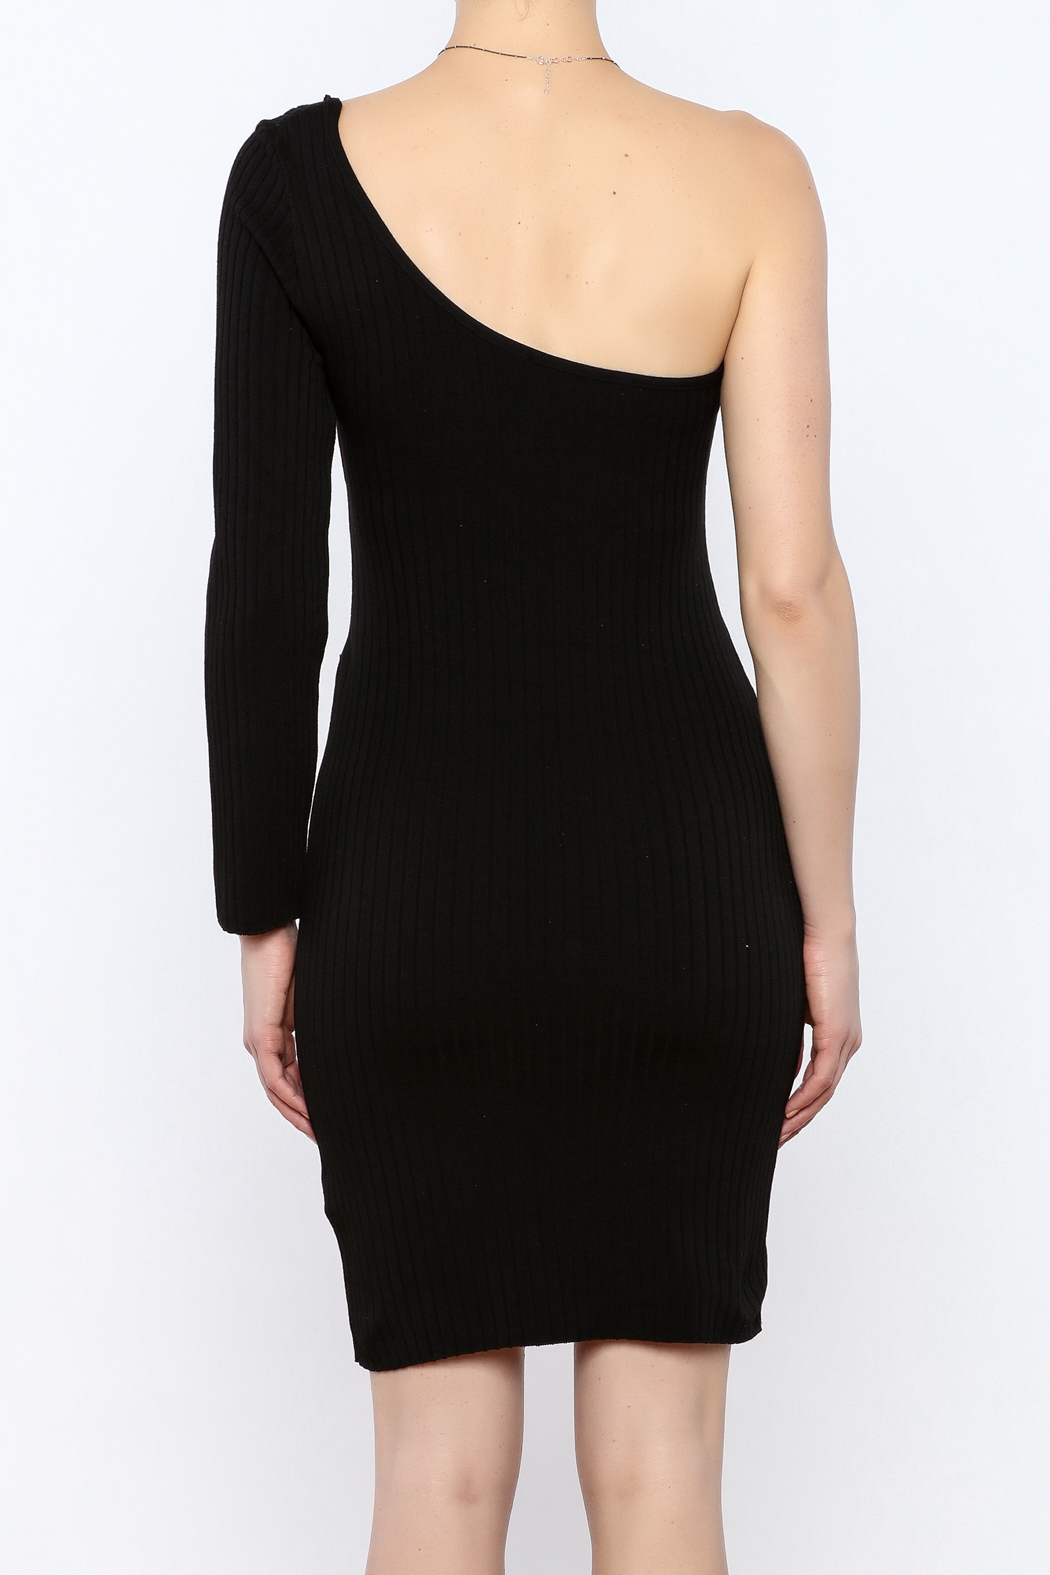 Cleo Black Knit Dress - Back Cropped Image